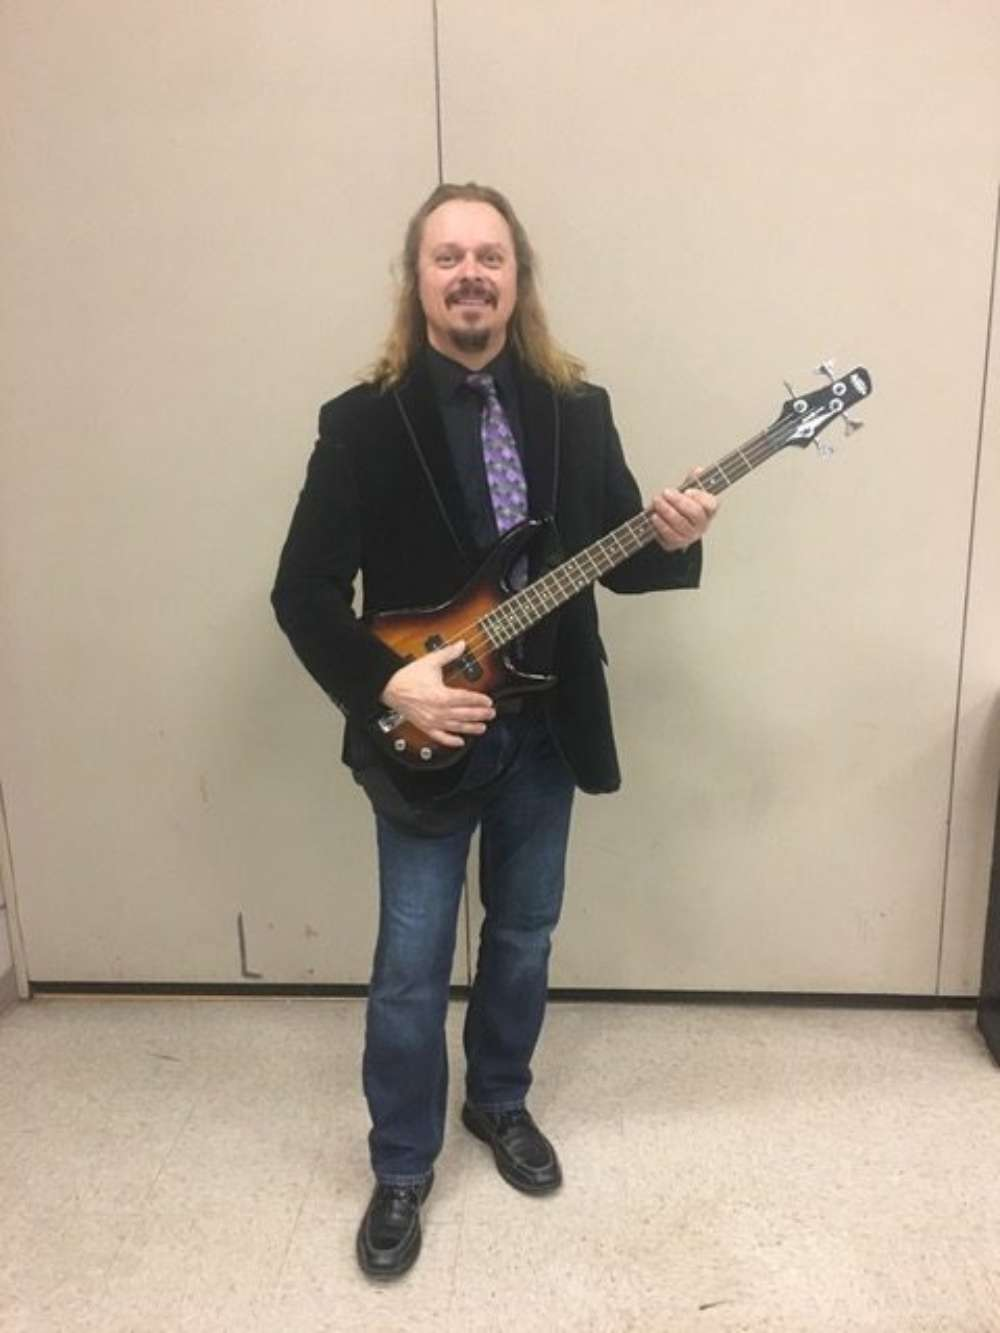 Tony Michaud, a music teacher in the Kennebunk schools, is the founder and lead singer/guitarist for Little Melodies, a children's band that rocks varying music styles to children and families. He will perform a tribute to Rick Charette along with his own original music for kids.